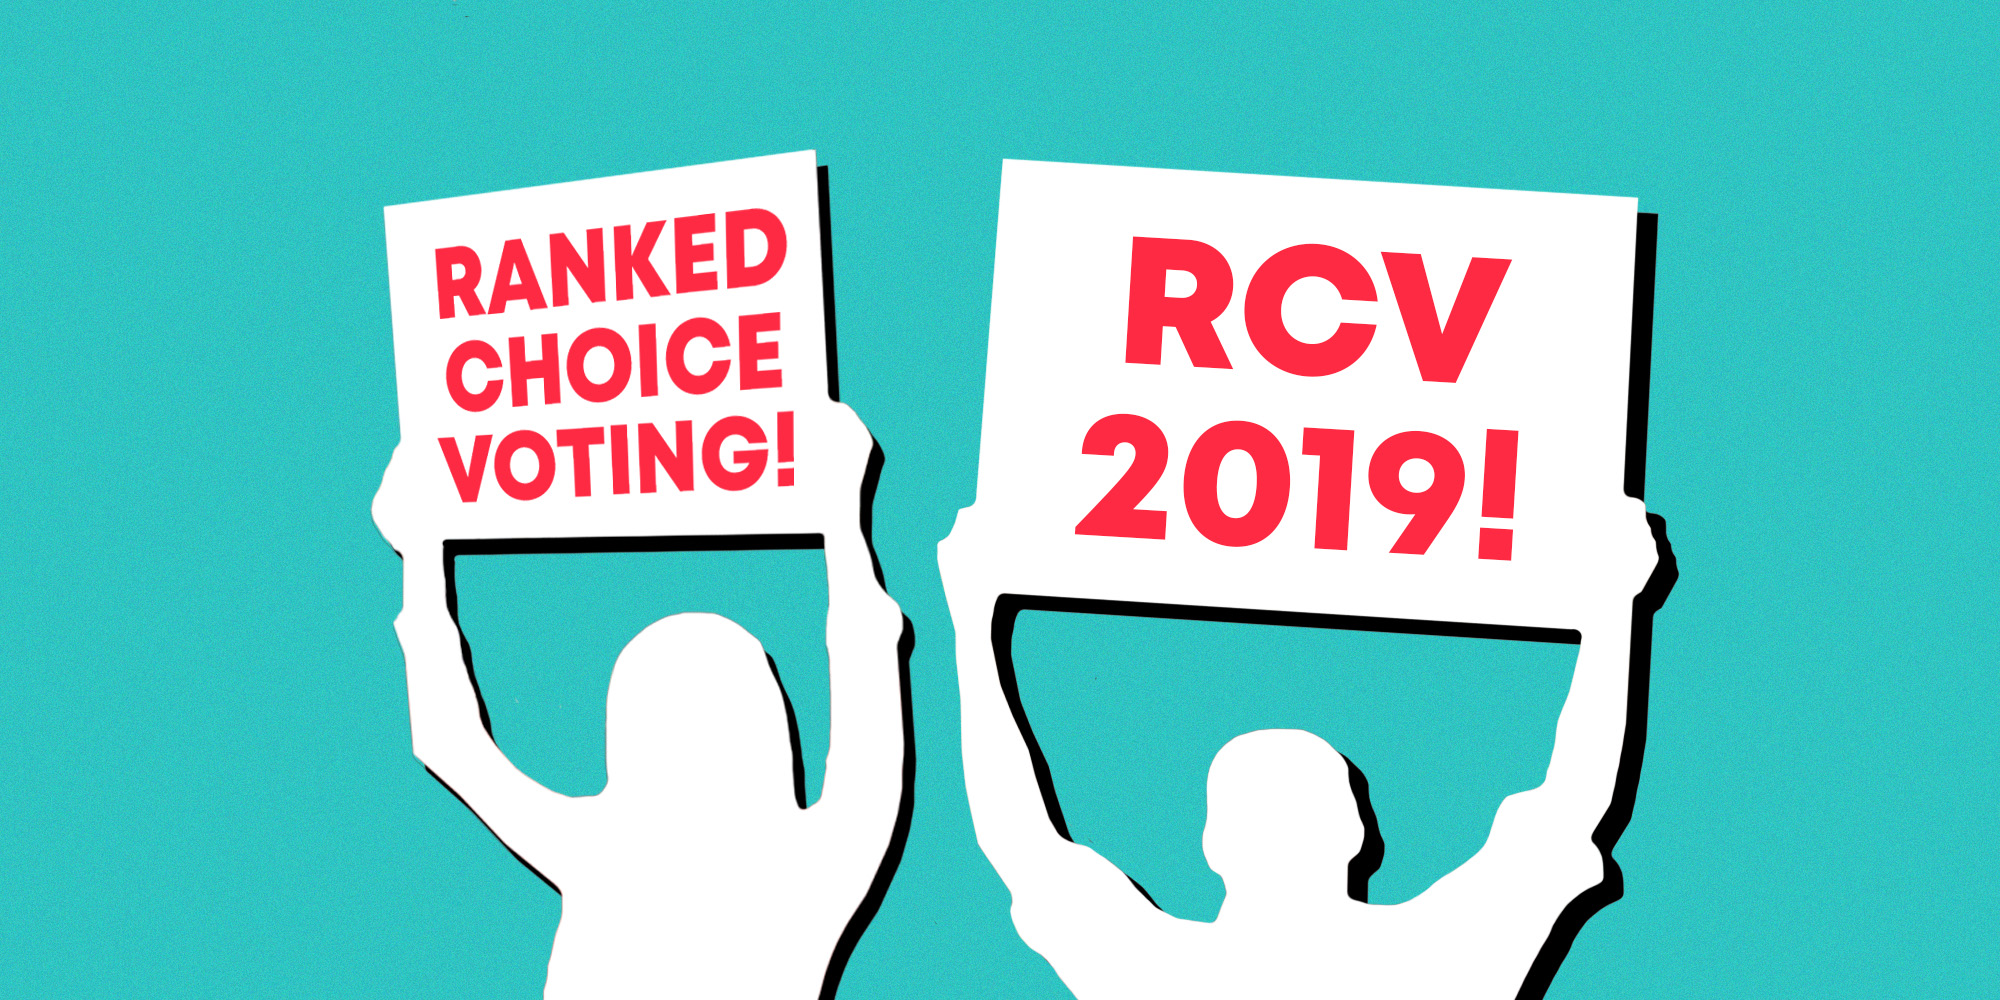 The race for ranked choice voting reform: key updates from Congress and state legislatures